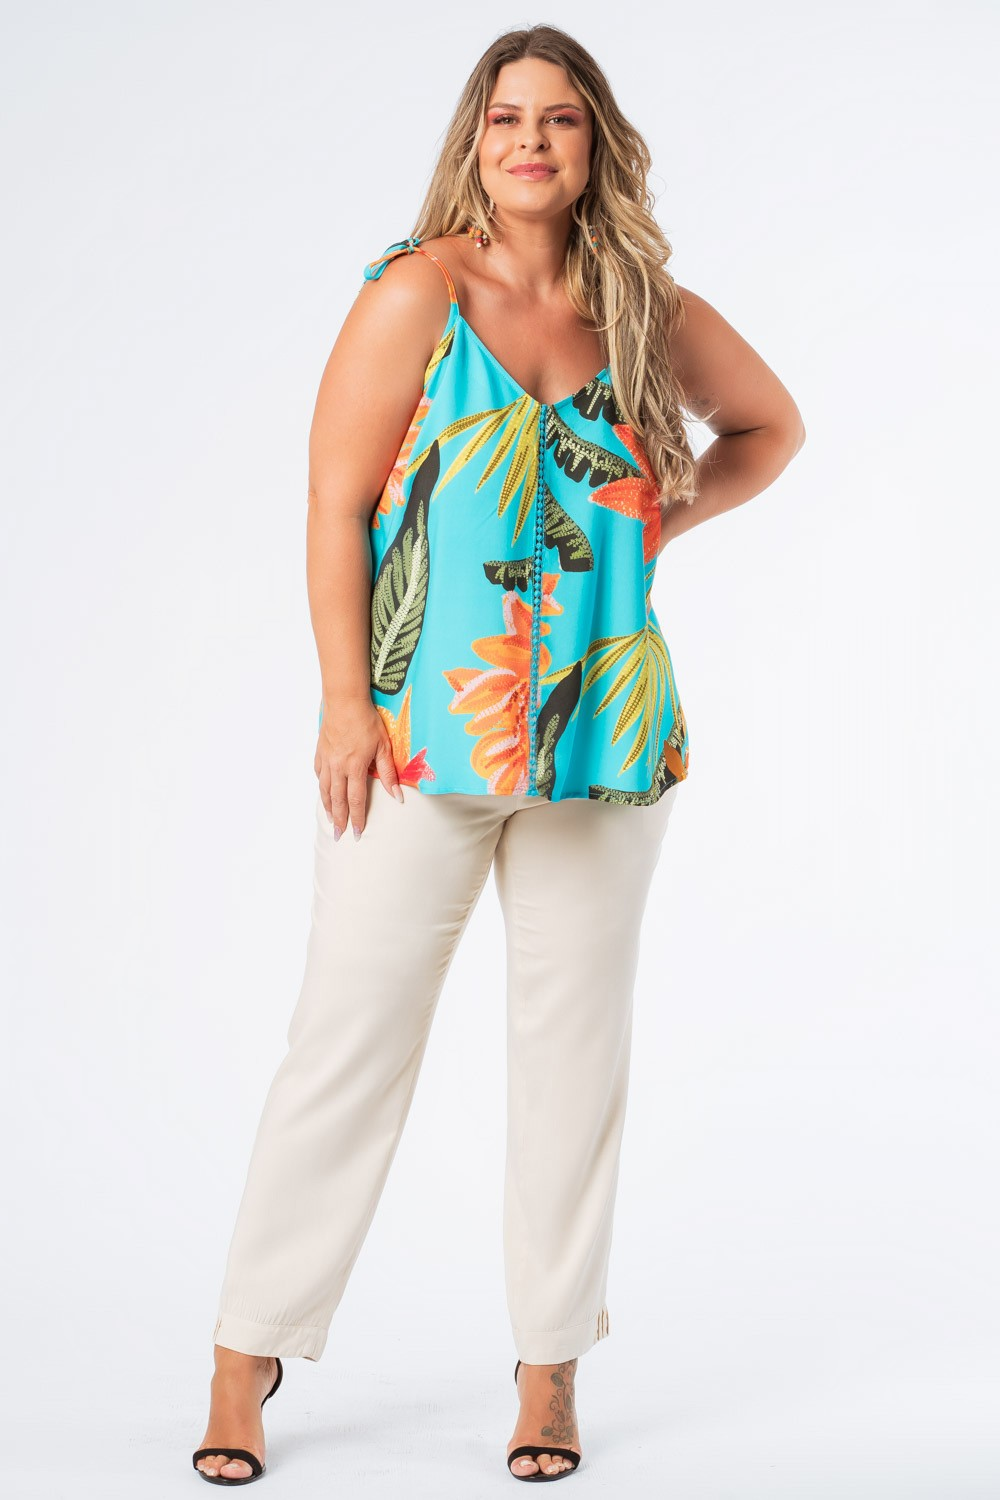 REGATA PLUS SIZE FRUTACOR TURQUESA